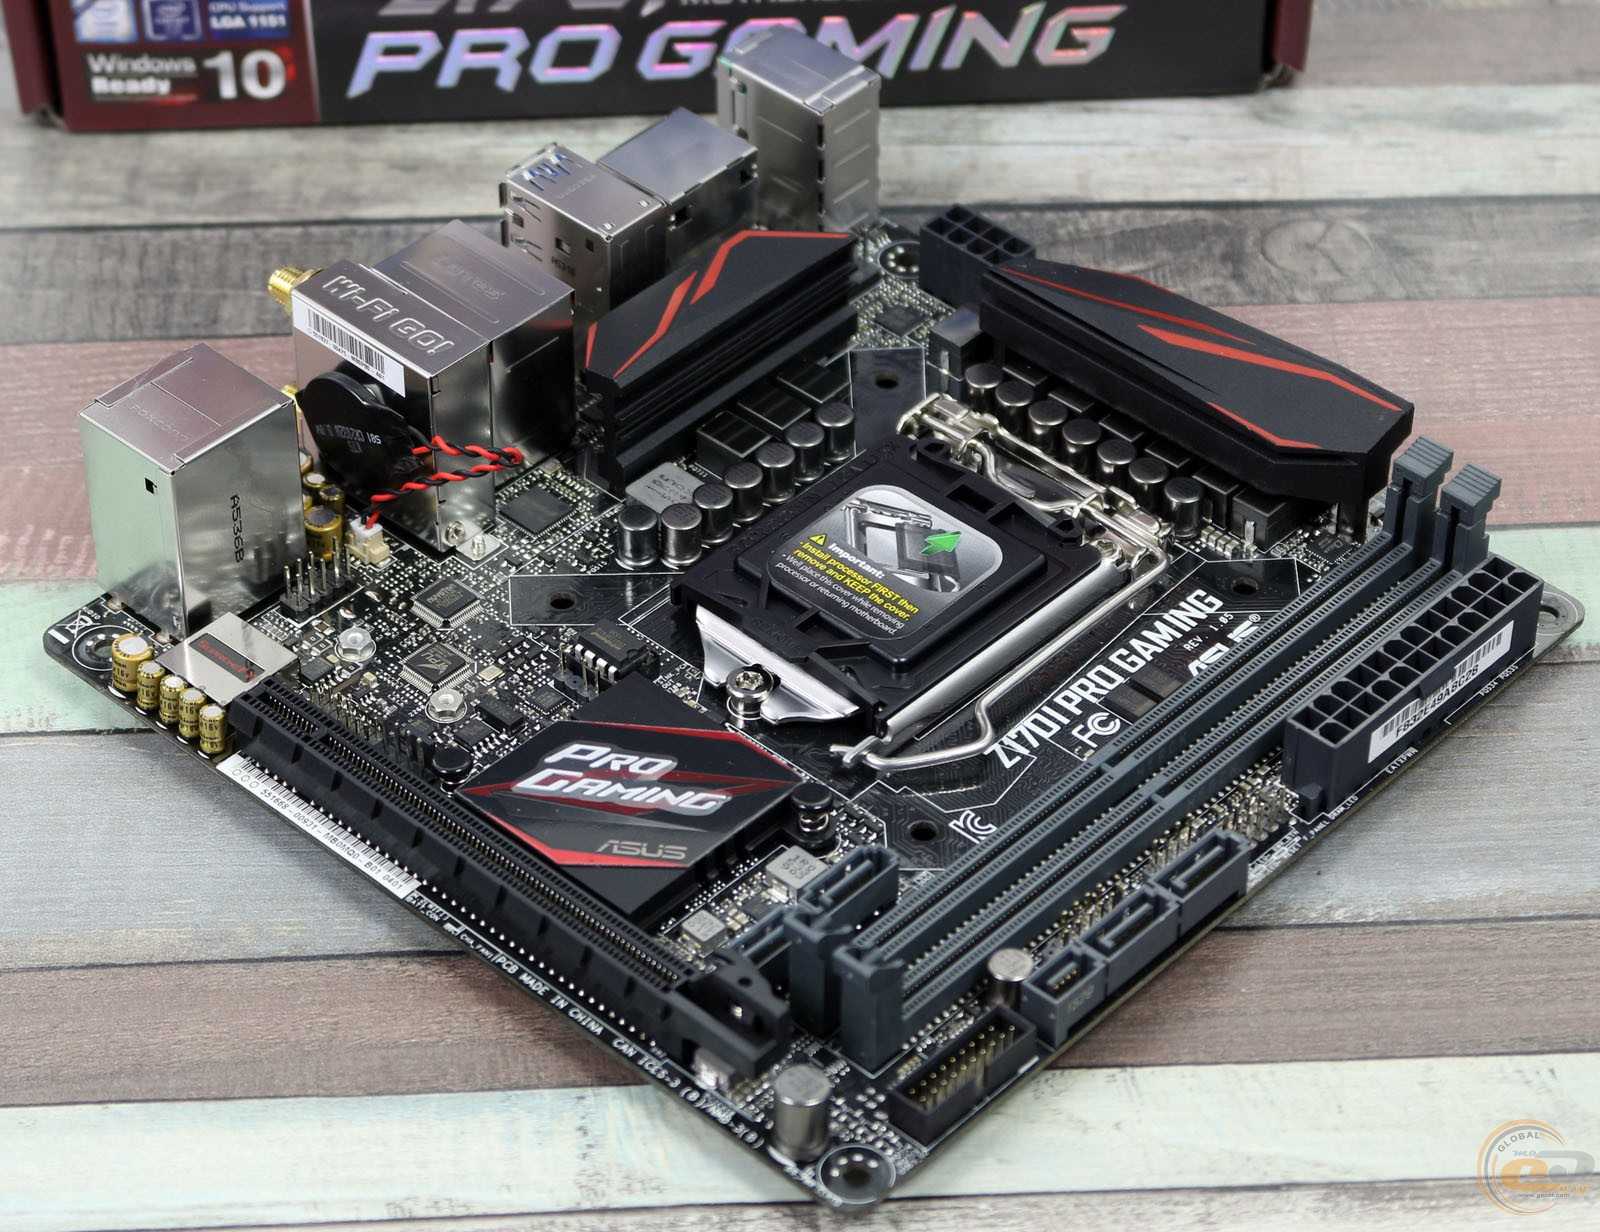 ASUS Z170I PRO GAMING INTEL USB 3.0 DRIVER FOR WINDOWS 8